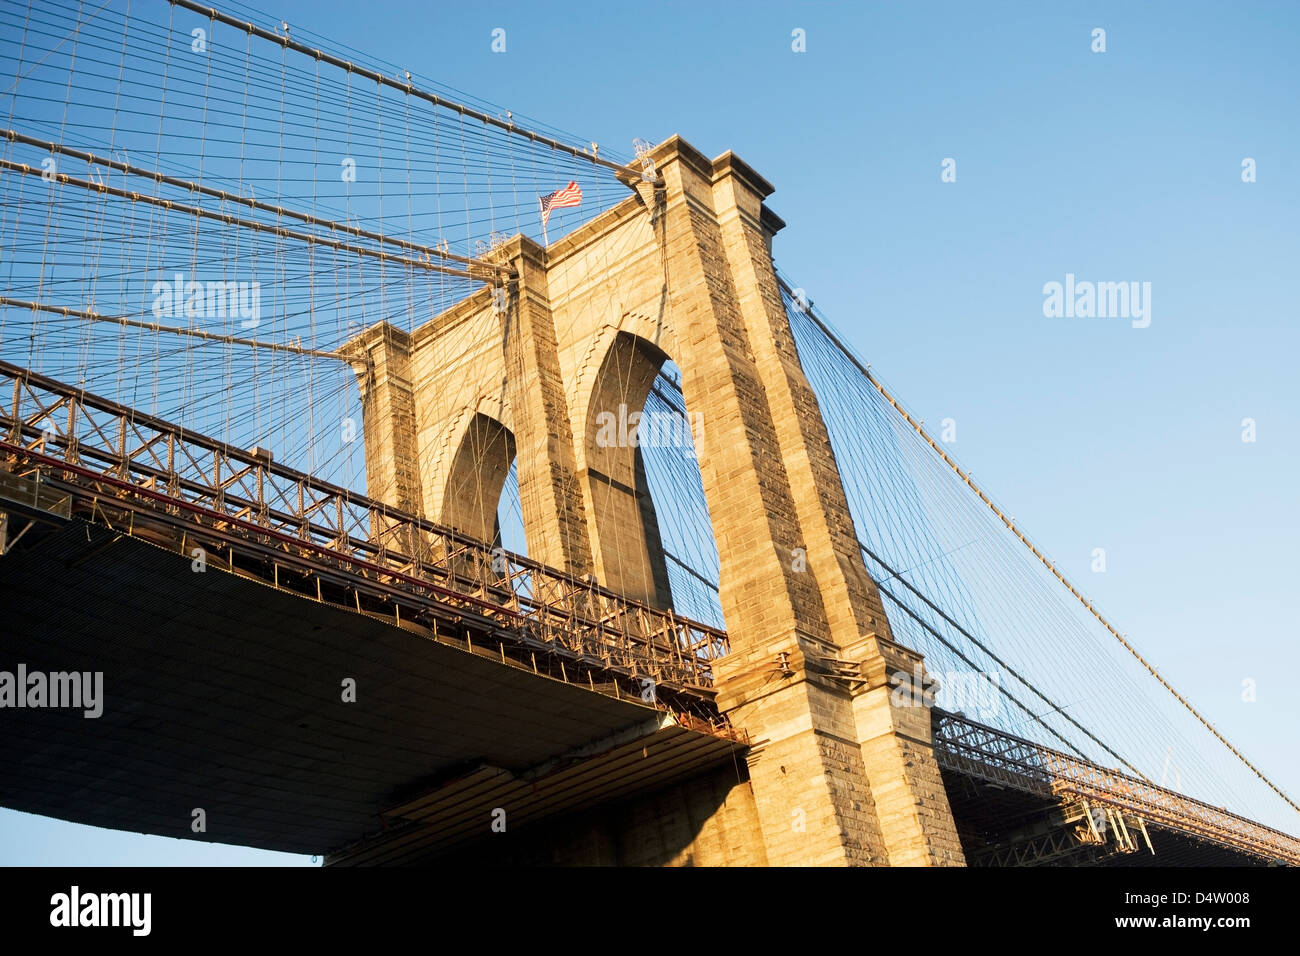 Brooklyn Bridge in New York City - Stock Image